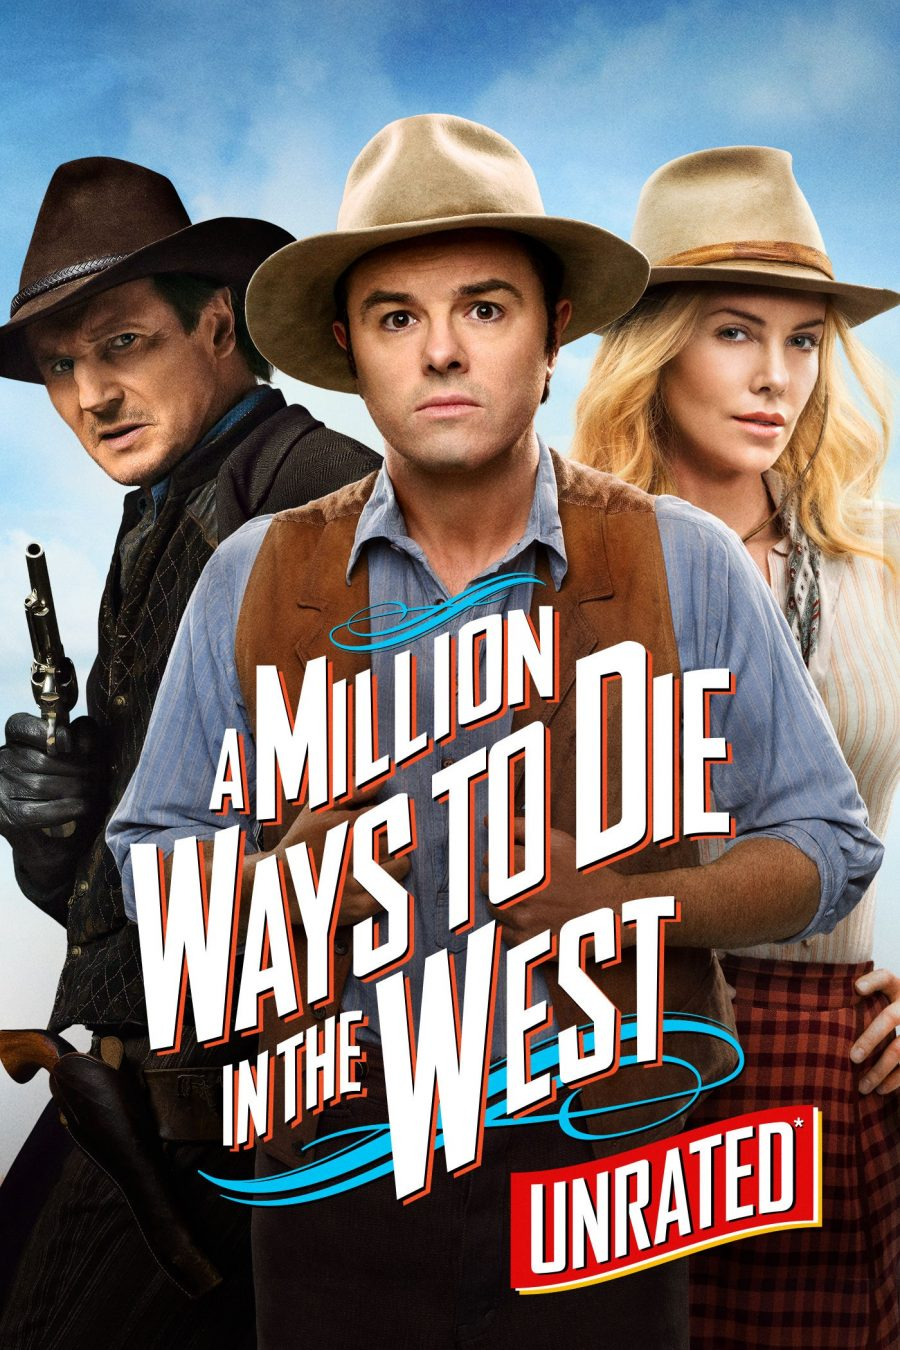 A-Million-Ways-to-Die-In-the-West-filming-locations-poster